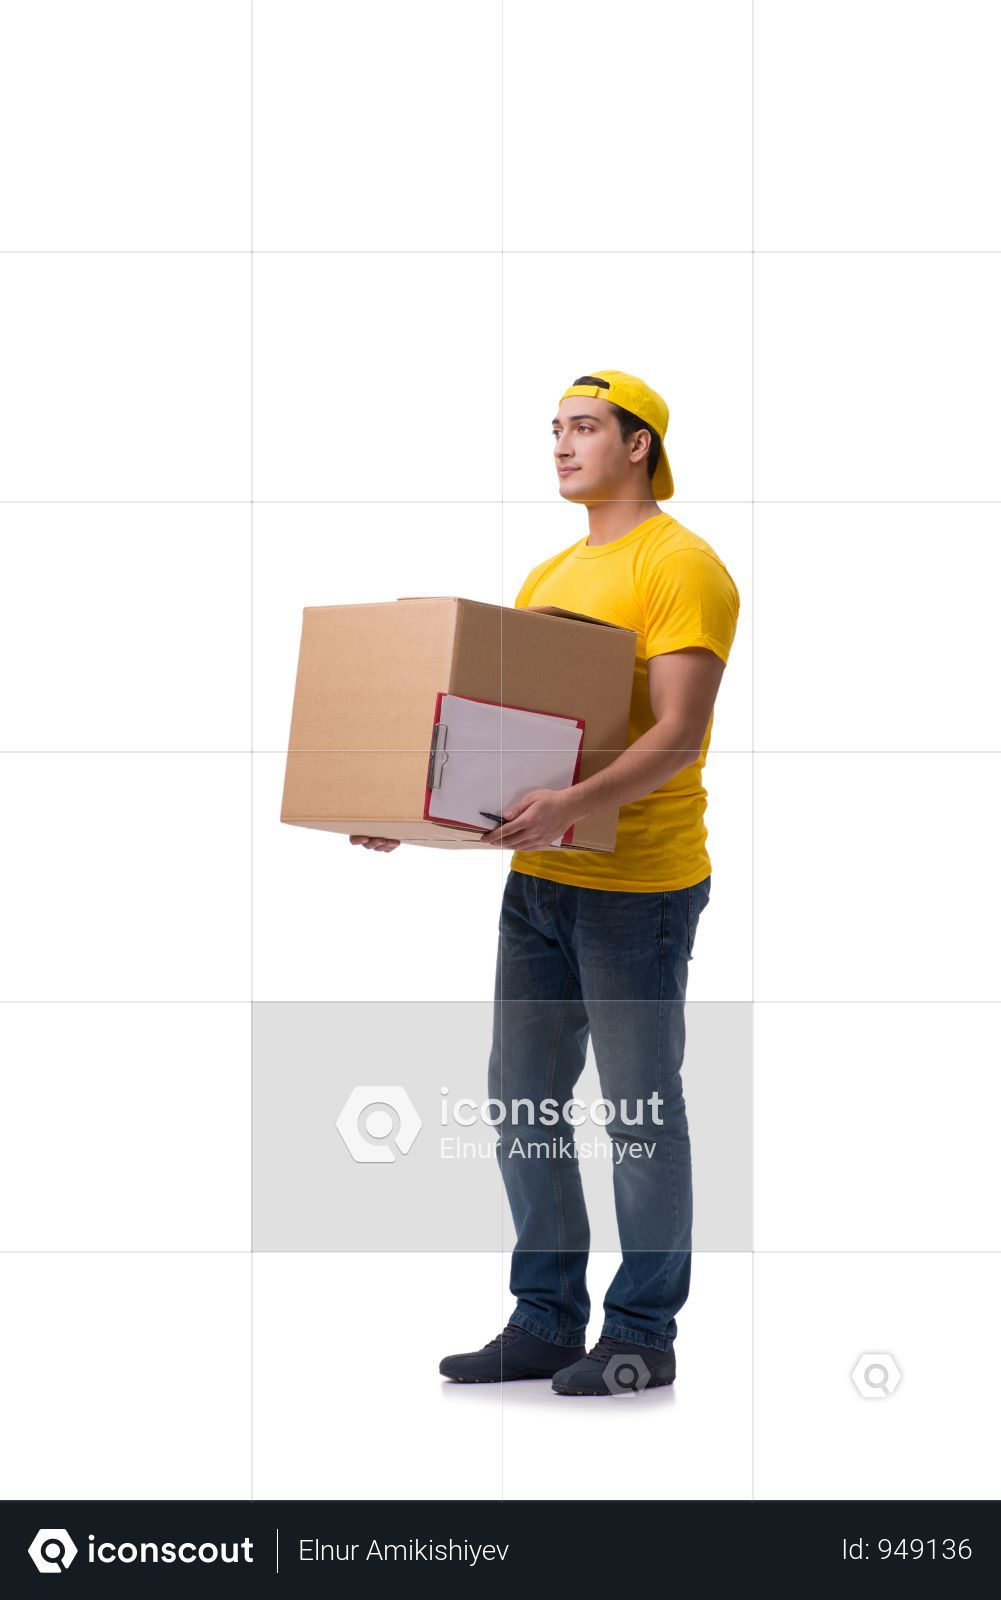 Premium Funny Delivery Boy With Box Isolated On White Photo Download In Png Jpg Format Delivery Photos Photo Boys